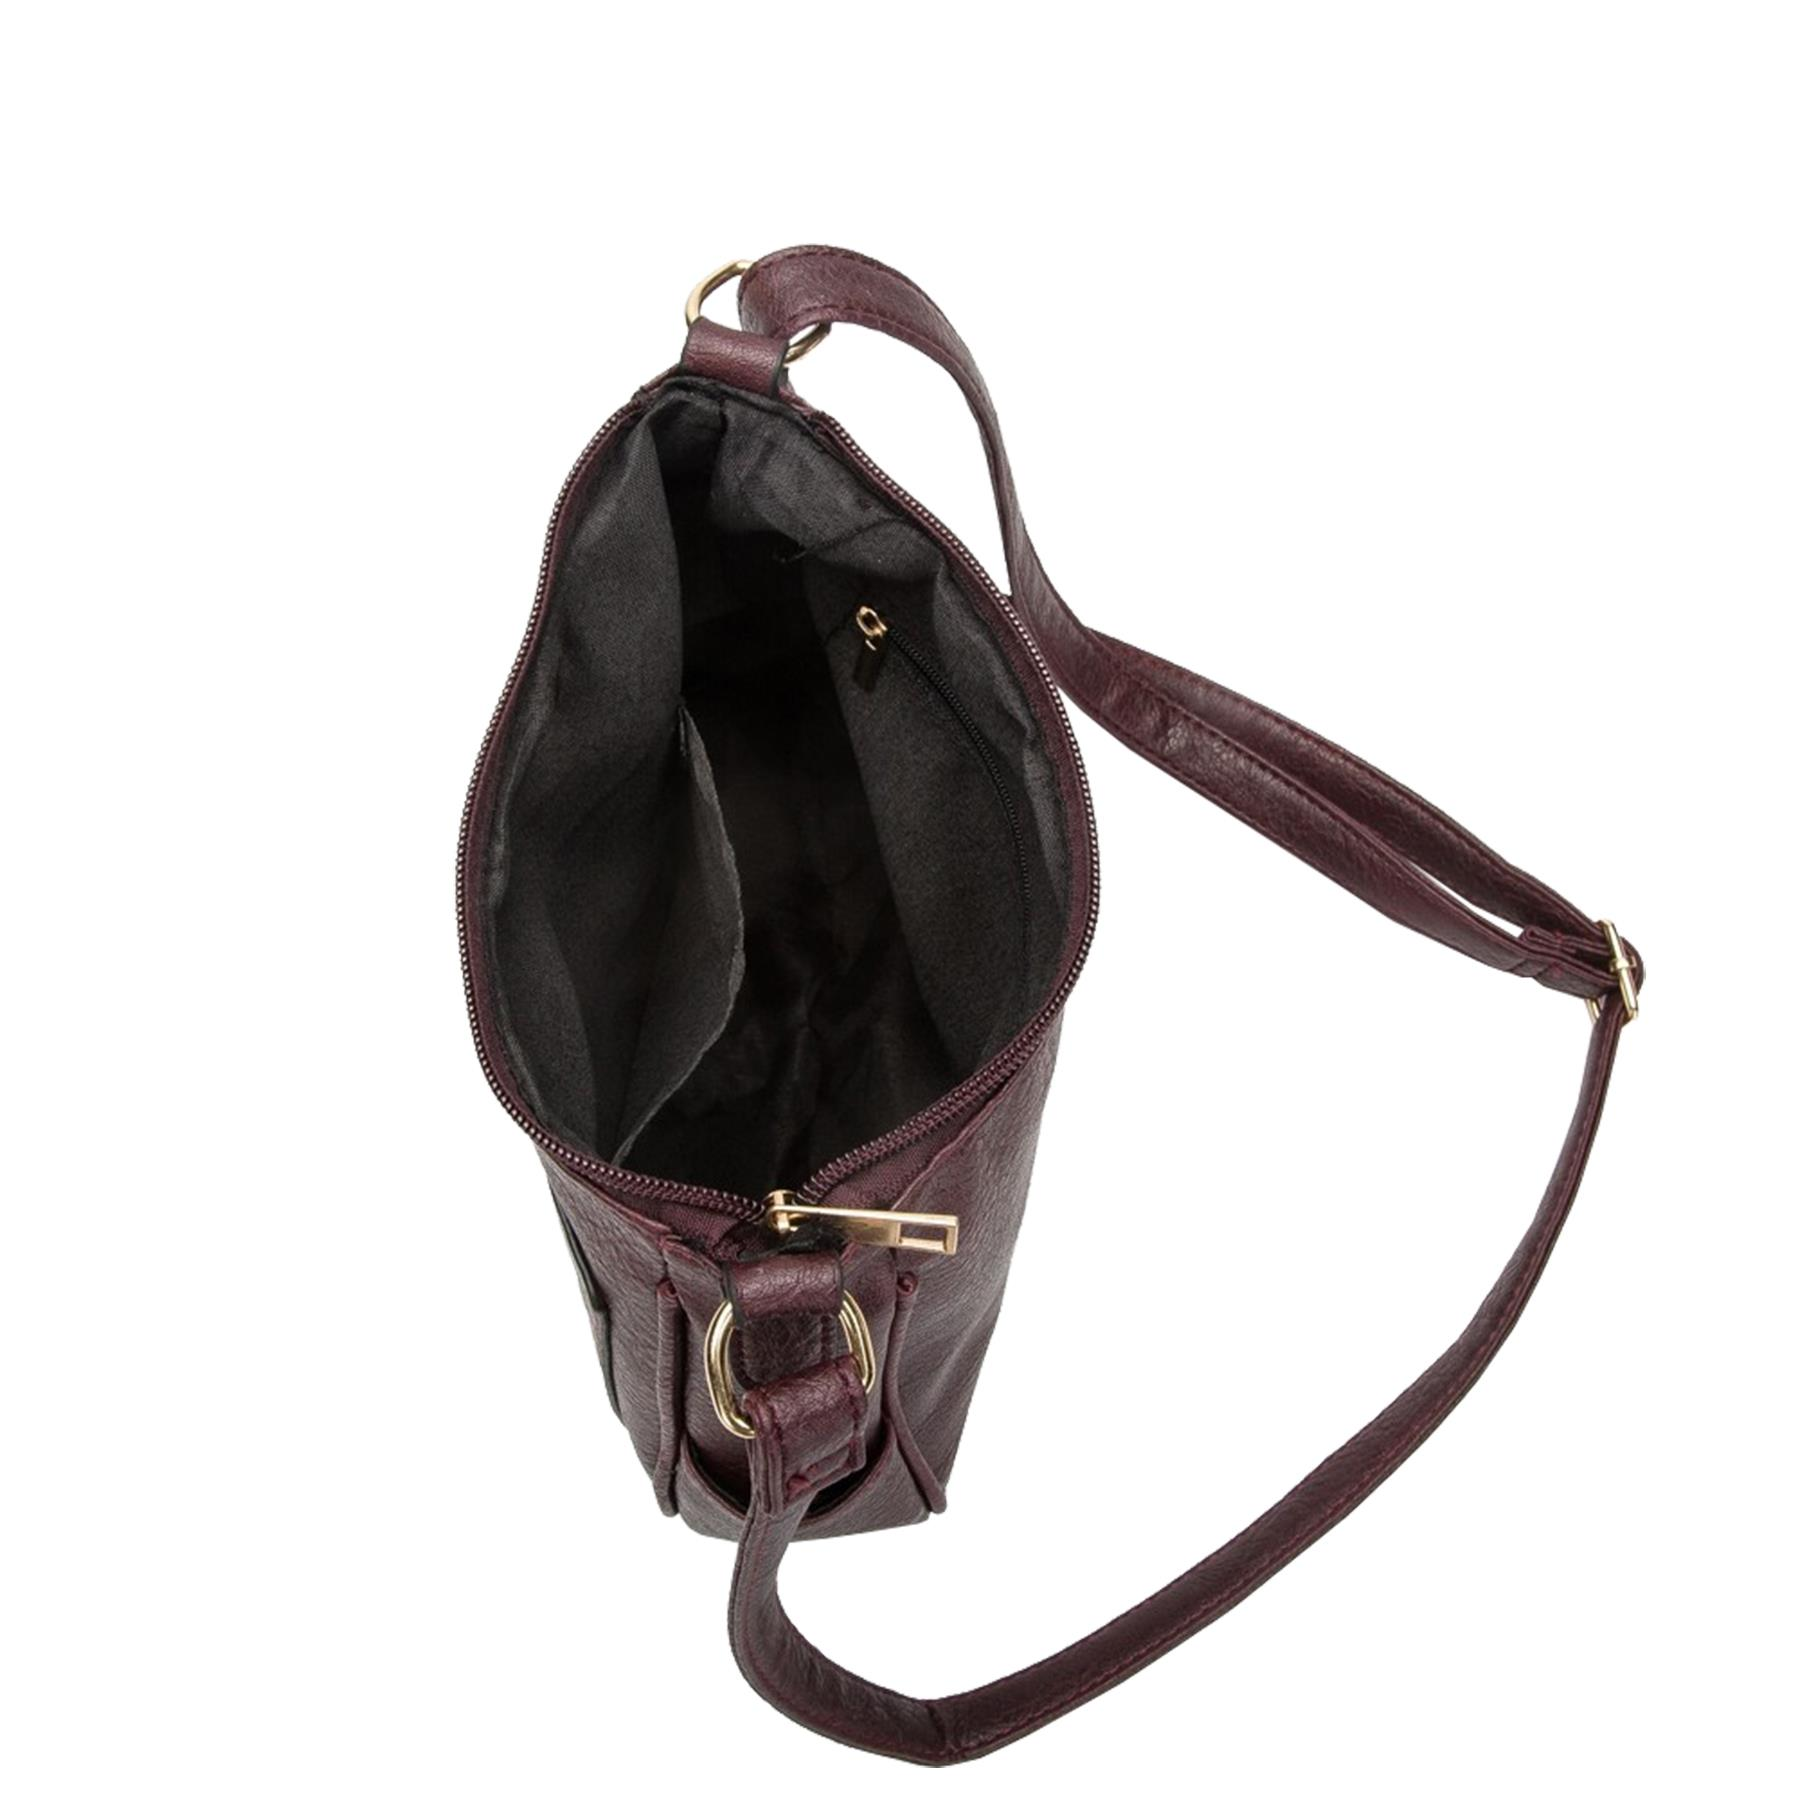 New-Women-s-Front-Zip-Faux-Leather-Basic-Small-Crossbody-Messenger-Bag thumbnail 10